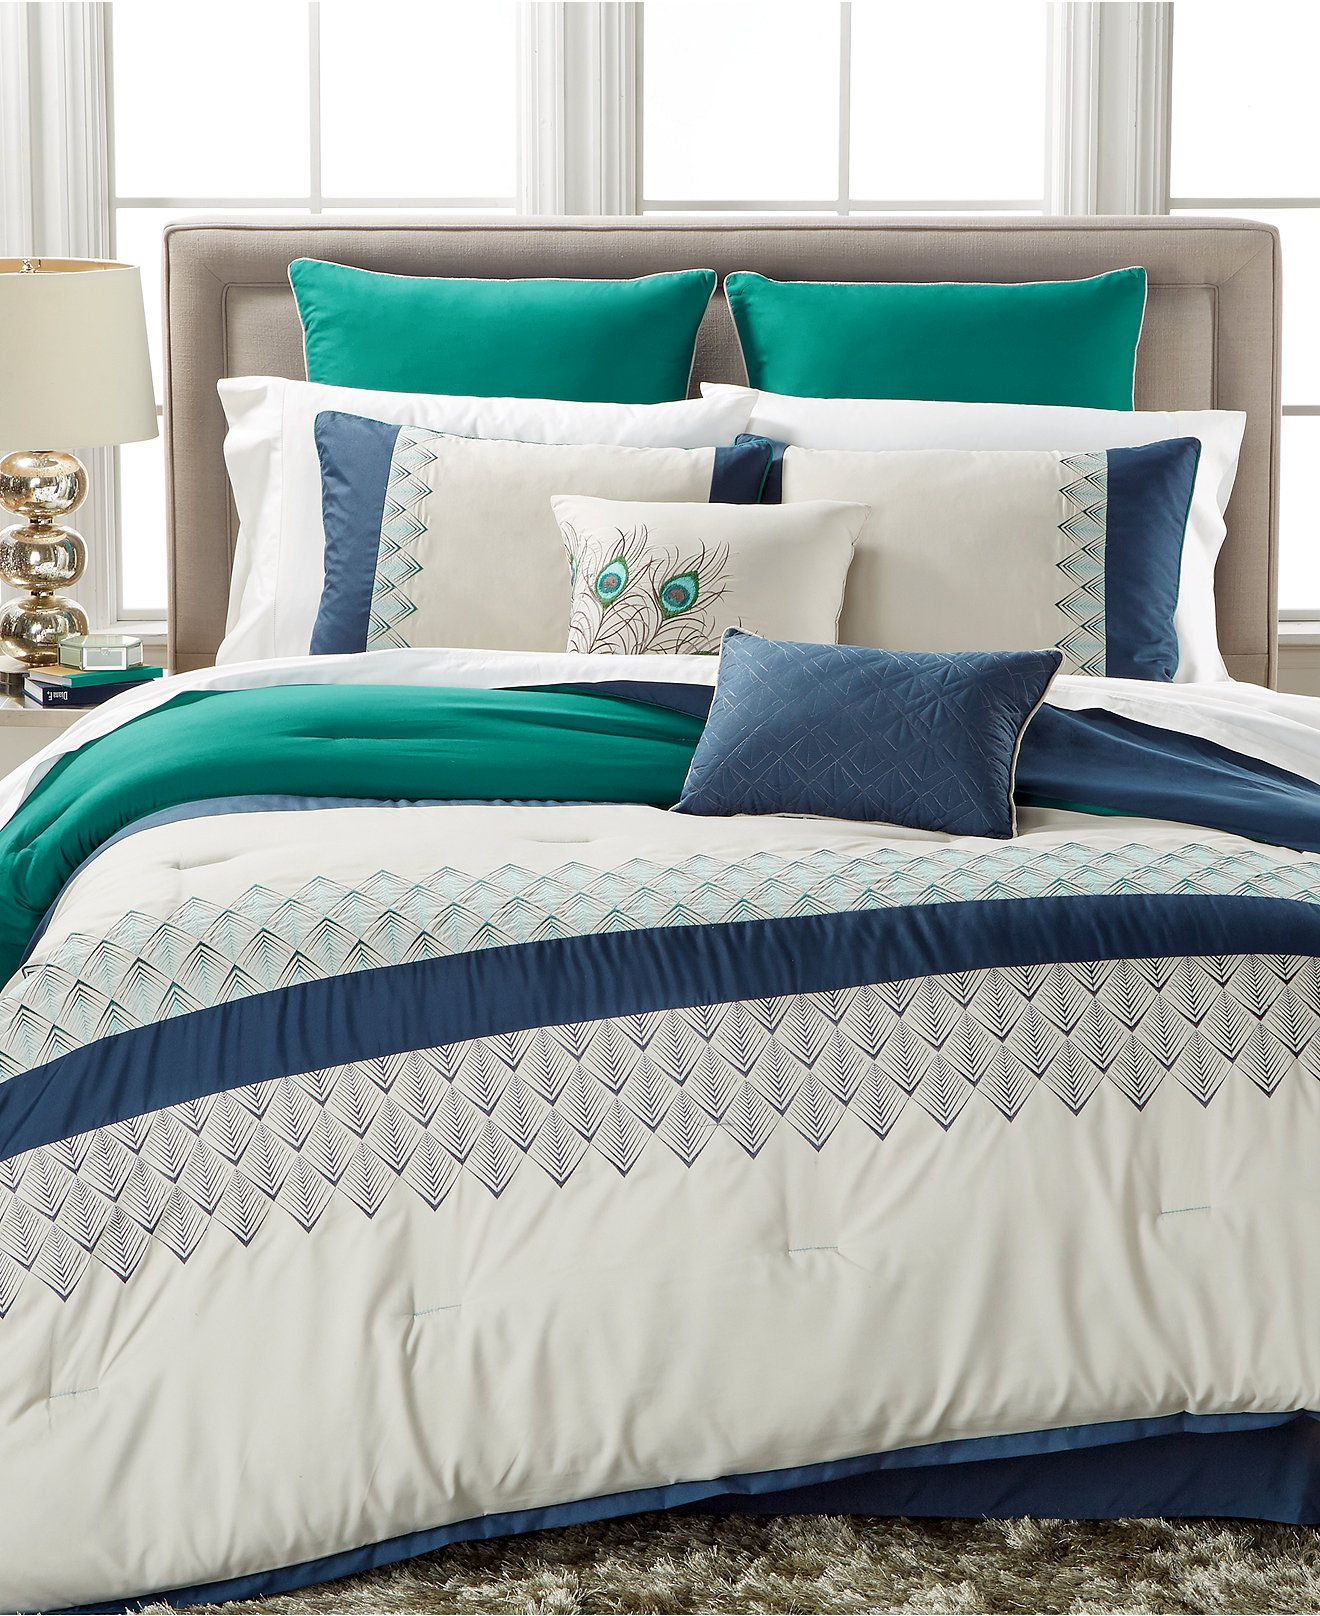 Closeout Rollins 8 Pc Comforter Set Only At Macy 39 S Bed In A Bag Bed Amp Bath Macy 39 S Comforter Sets Macys Bedding King Comforter Sets King size comforters on sale